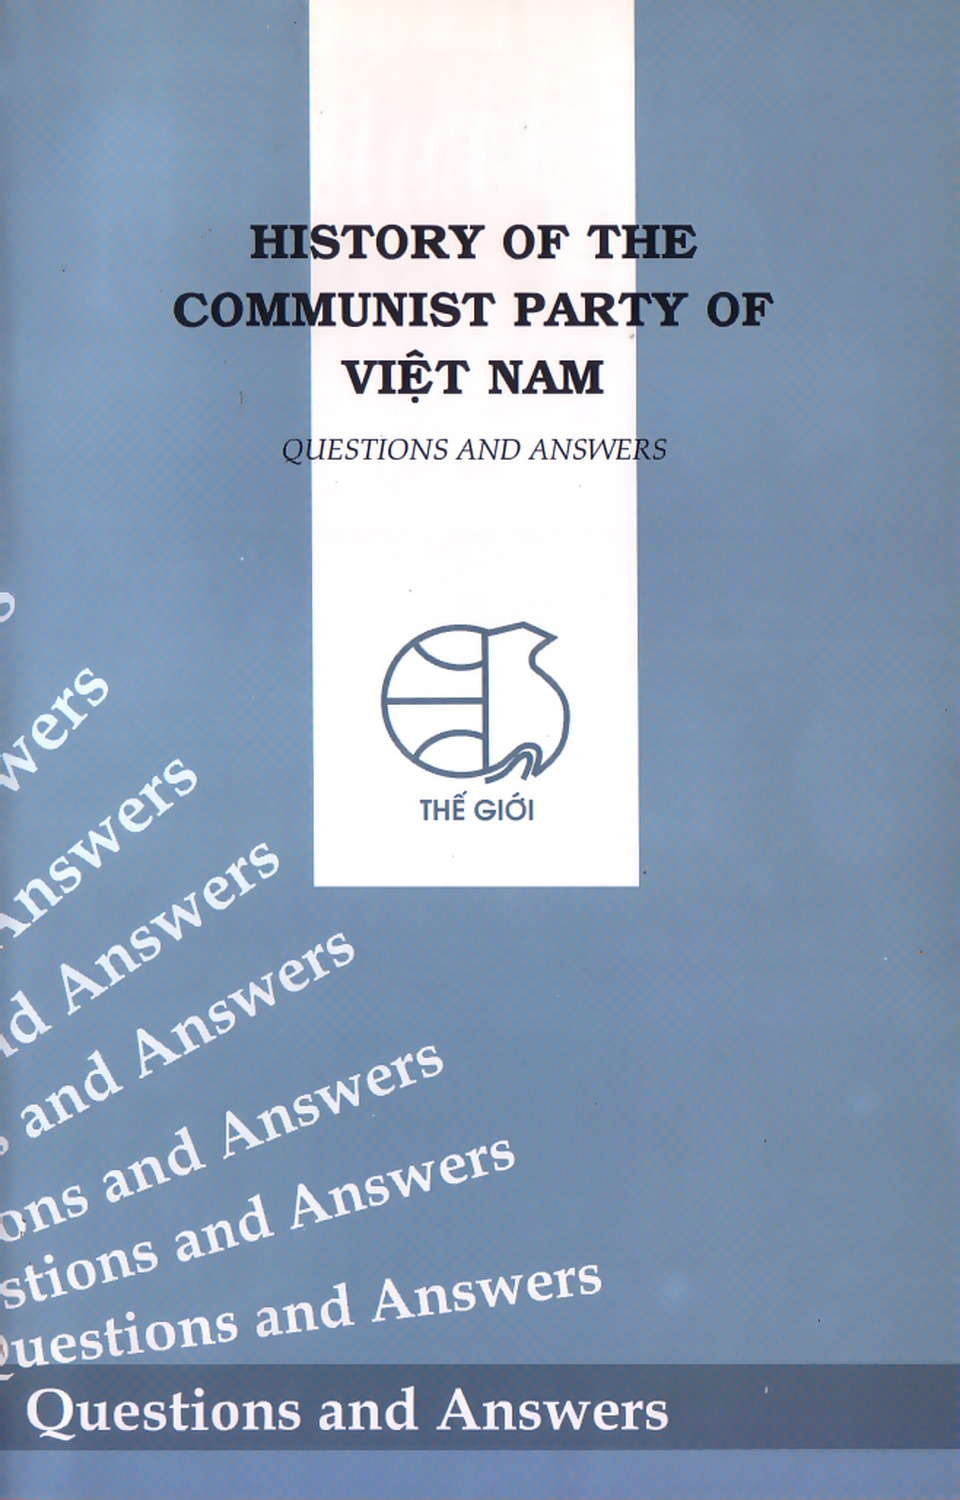 HISTORY OF THE  COMMUNIST PARTY OF  VIỆT NAM (Questions and Answers)